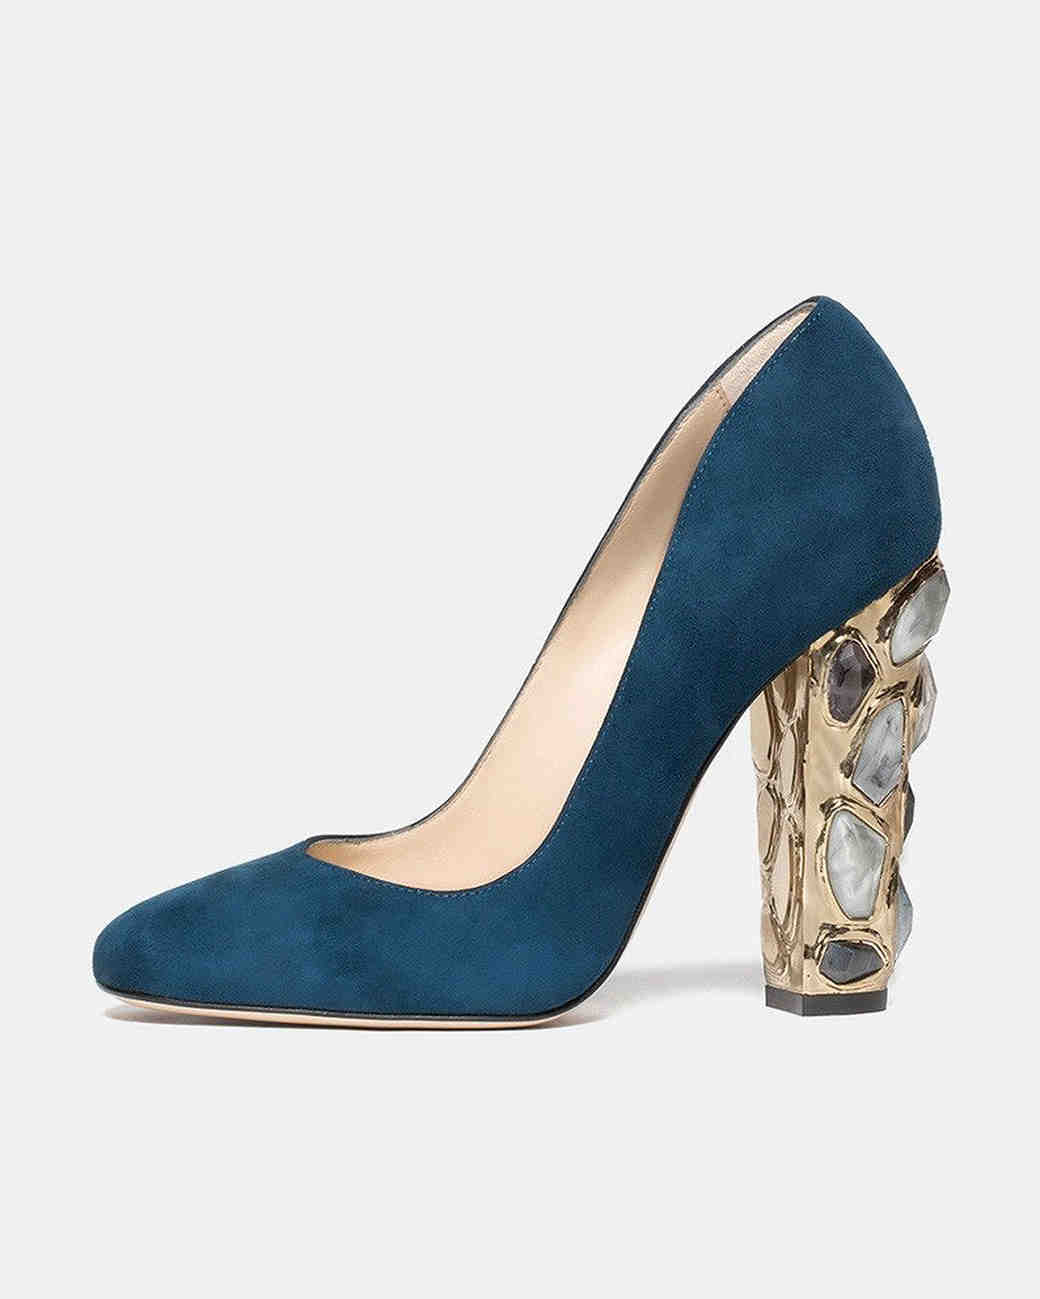 Paul Andrew Jewel Heeled blue Pumps